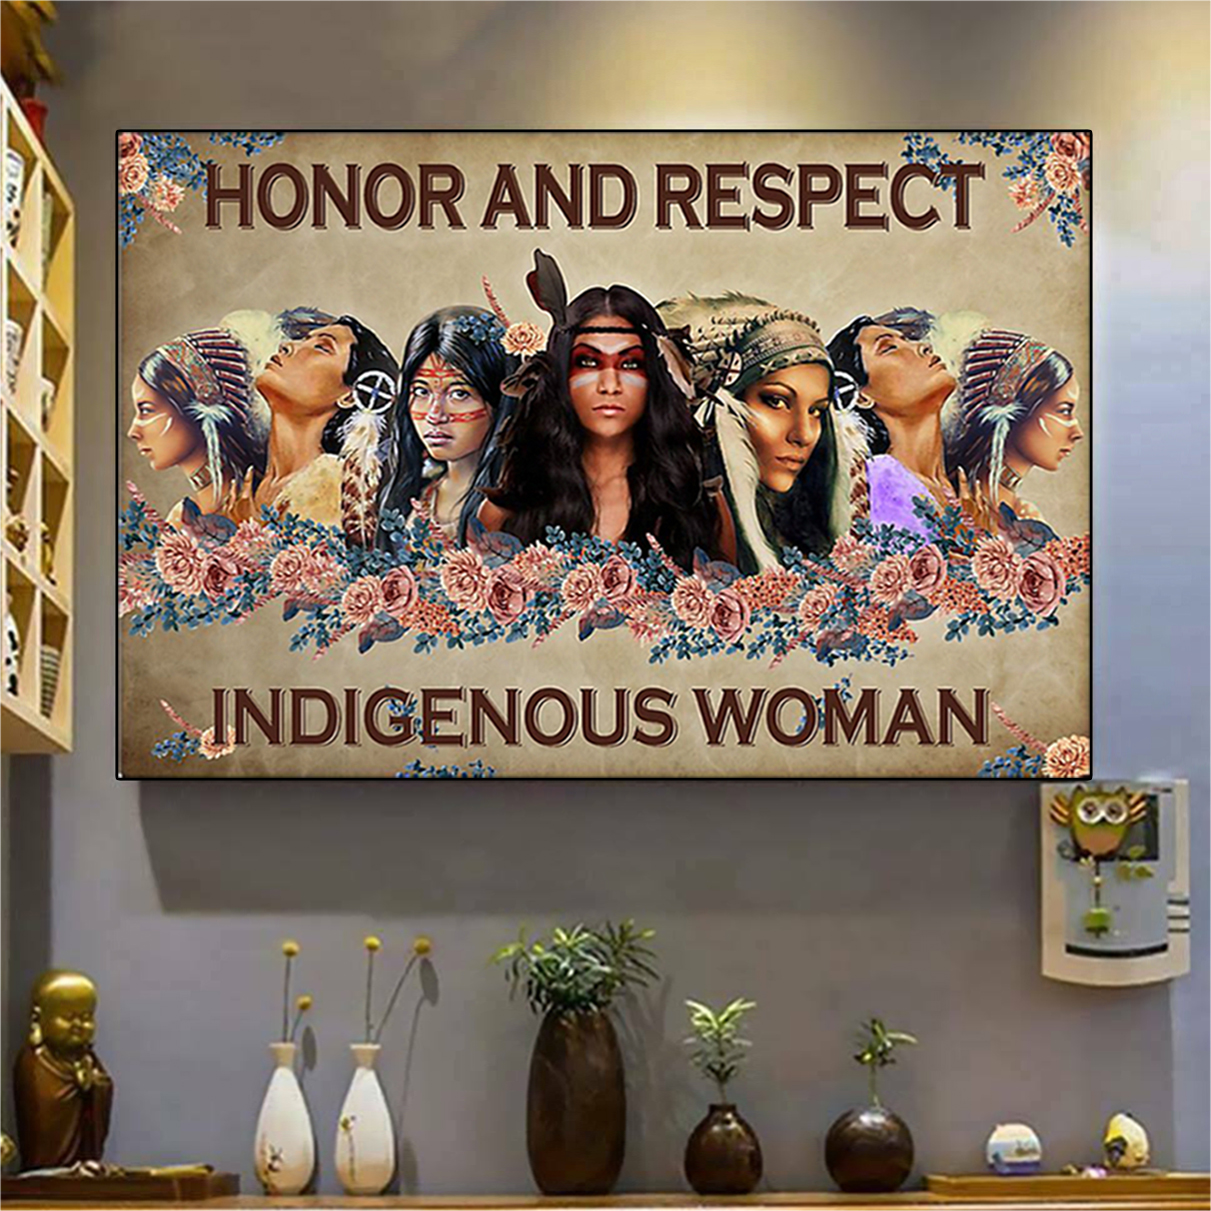 Honor and respect indigenous woman poster A2